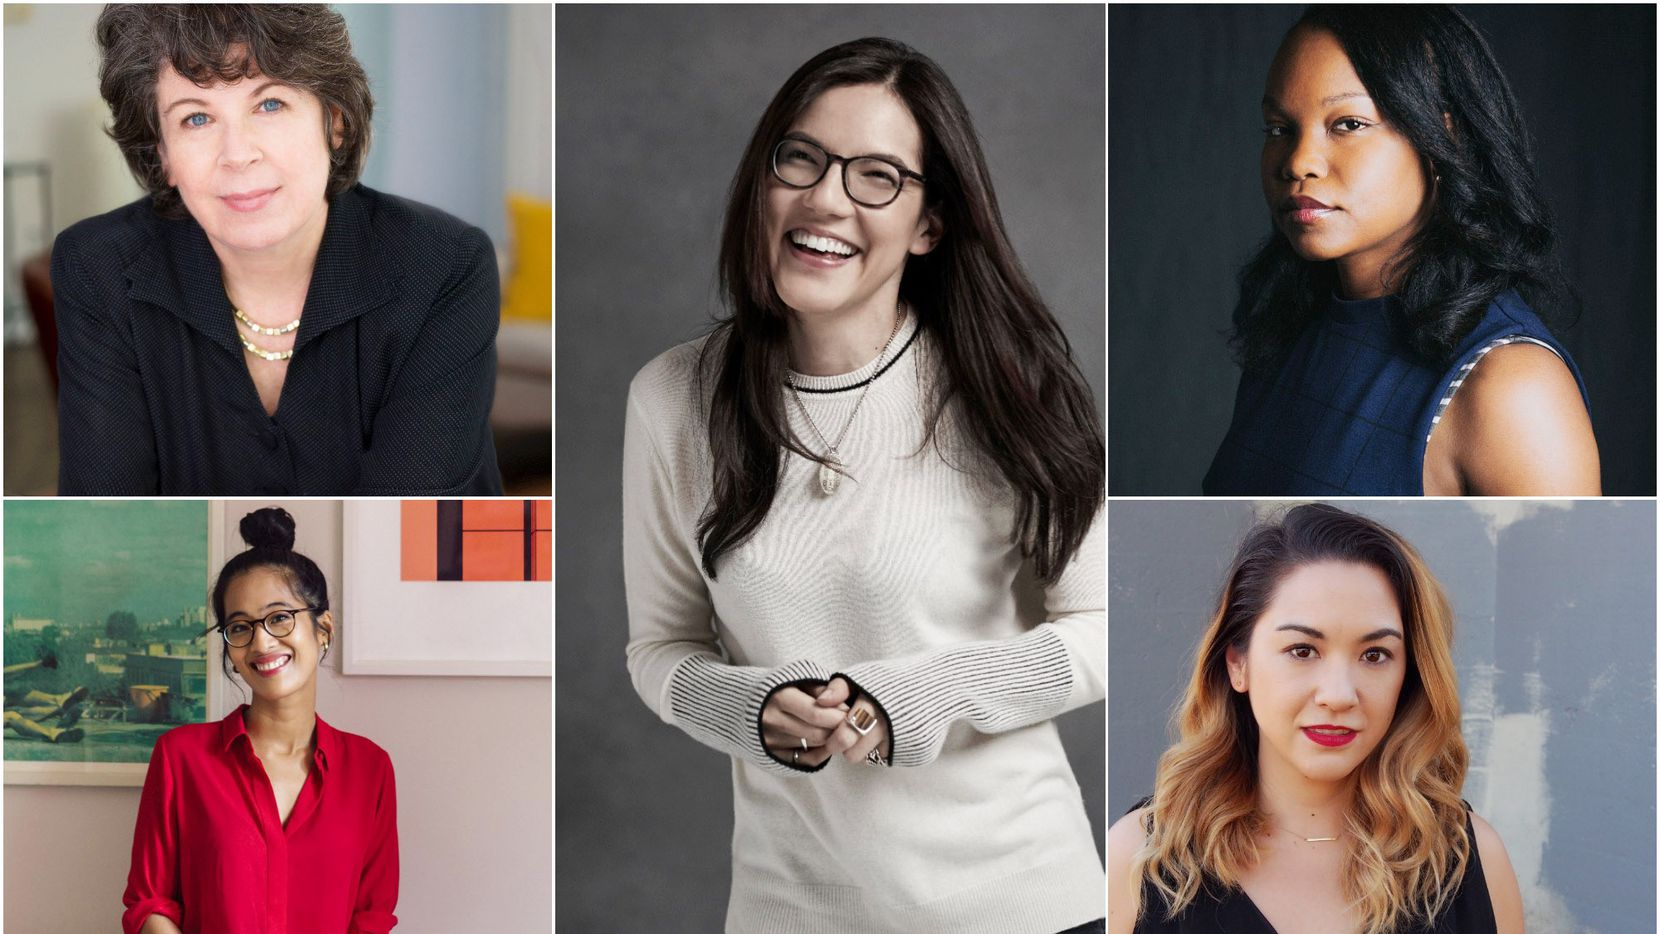 Authors including (clockwise from top left) Meg Wolitzer, Sloane Crosley, Nafissa Thompson-Spires, Aja Gabel and Elaine Castillo have penned engaging books about womanhood.